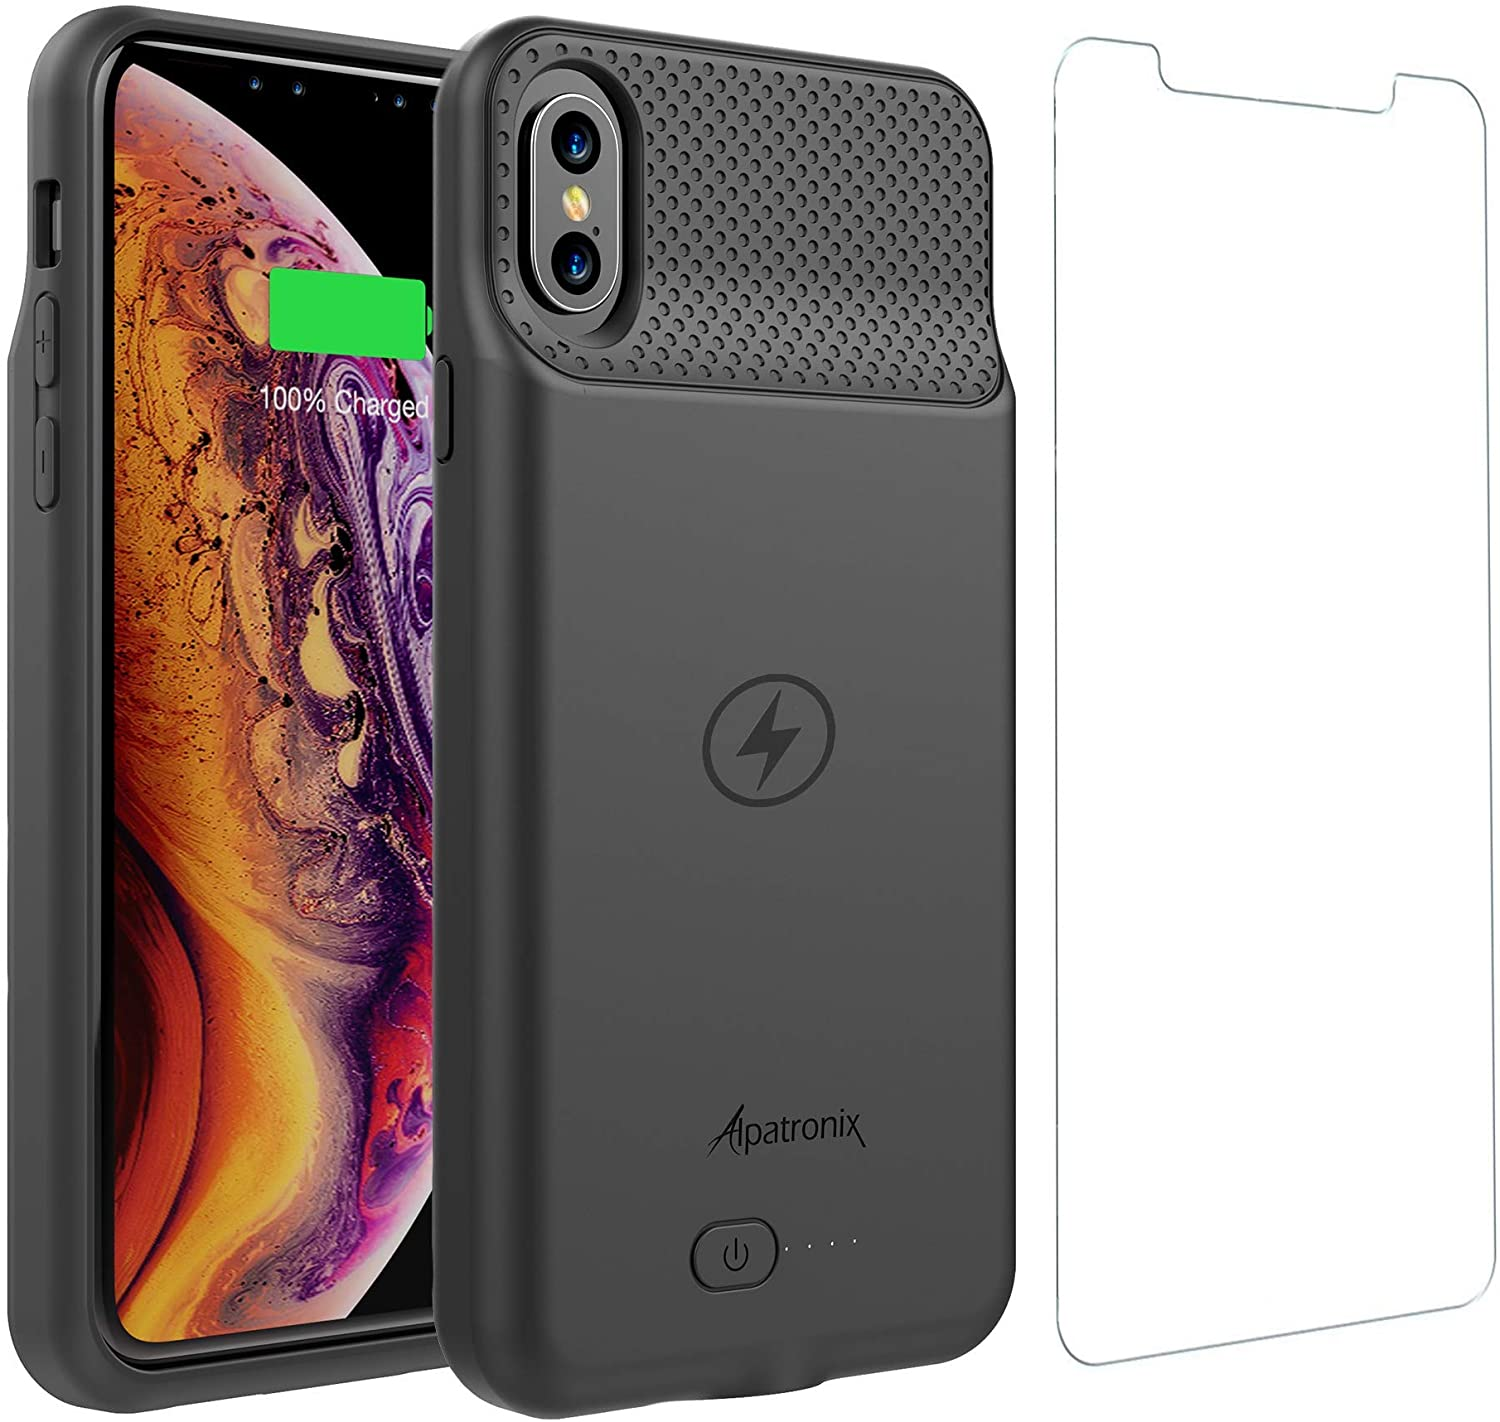 iPhone XR Battery Case, Powerful Slim Portable Protective Extended Charger Cover with Wireless Charging Compatible with iPhone XR (6.1 inch) BXXr - (Black)